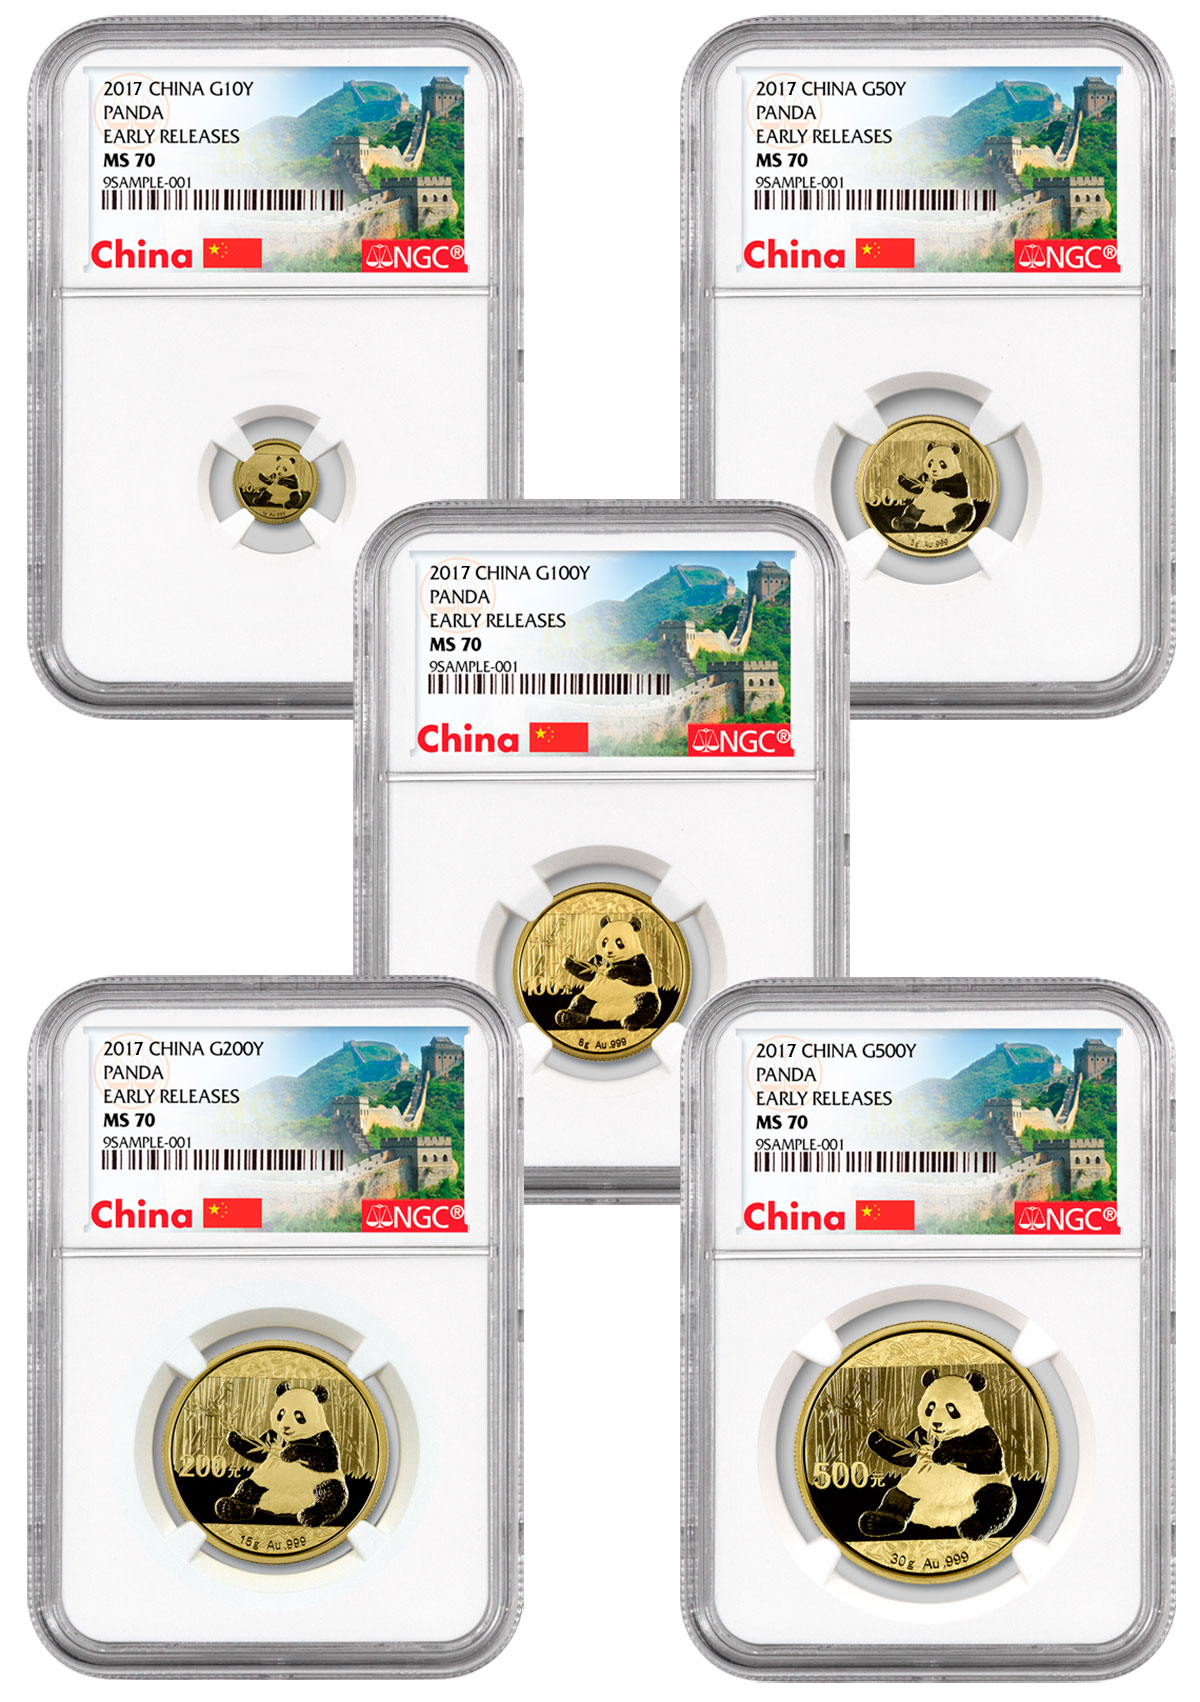 2017 China Gold Panda 5-Coin Set NGC MS70 ER (Exclusive Great Wall Label)